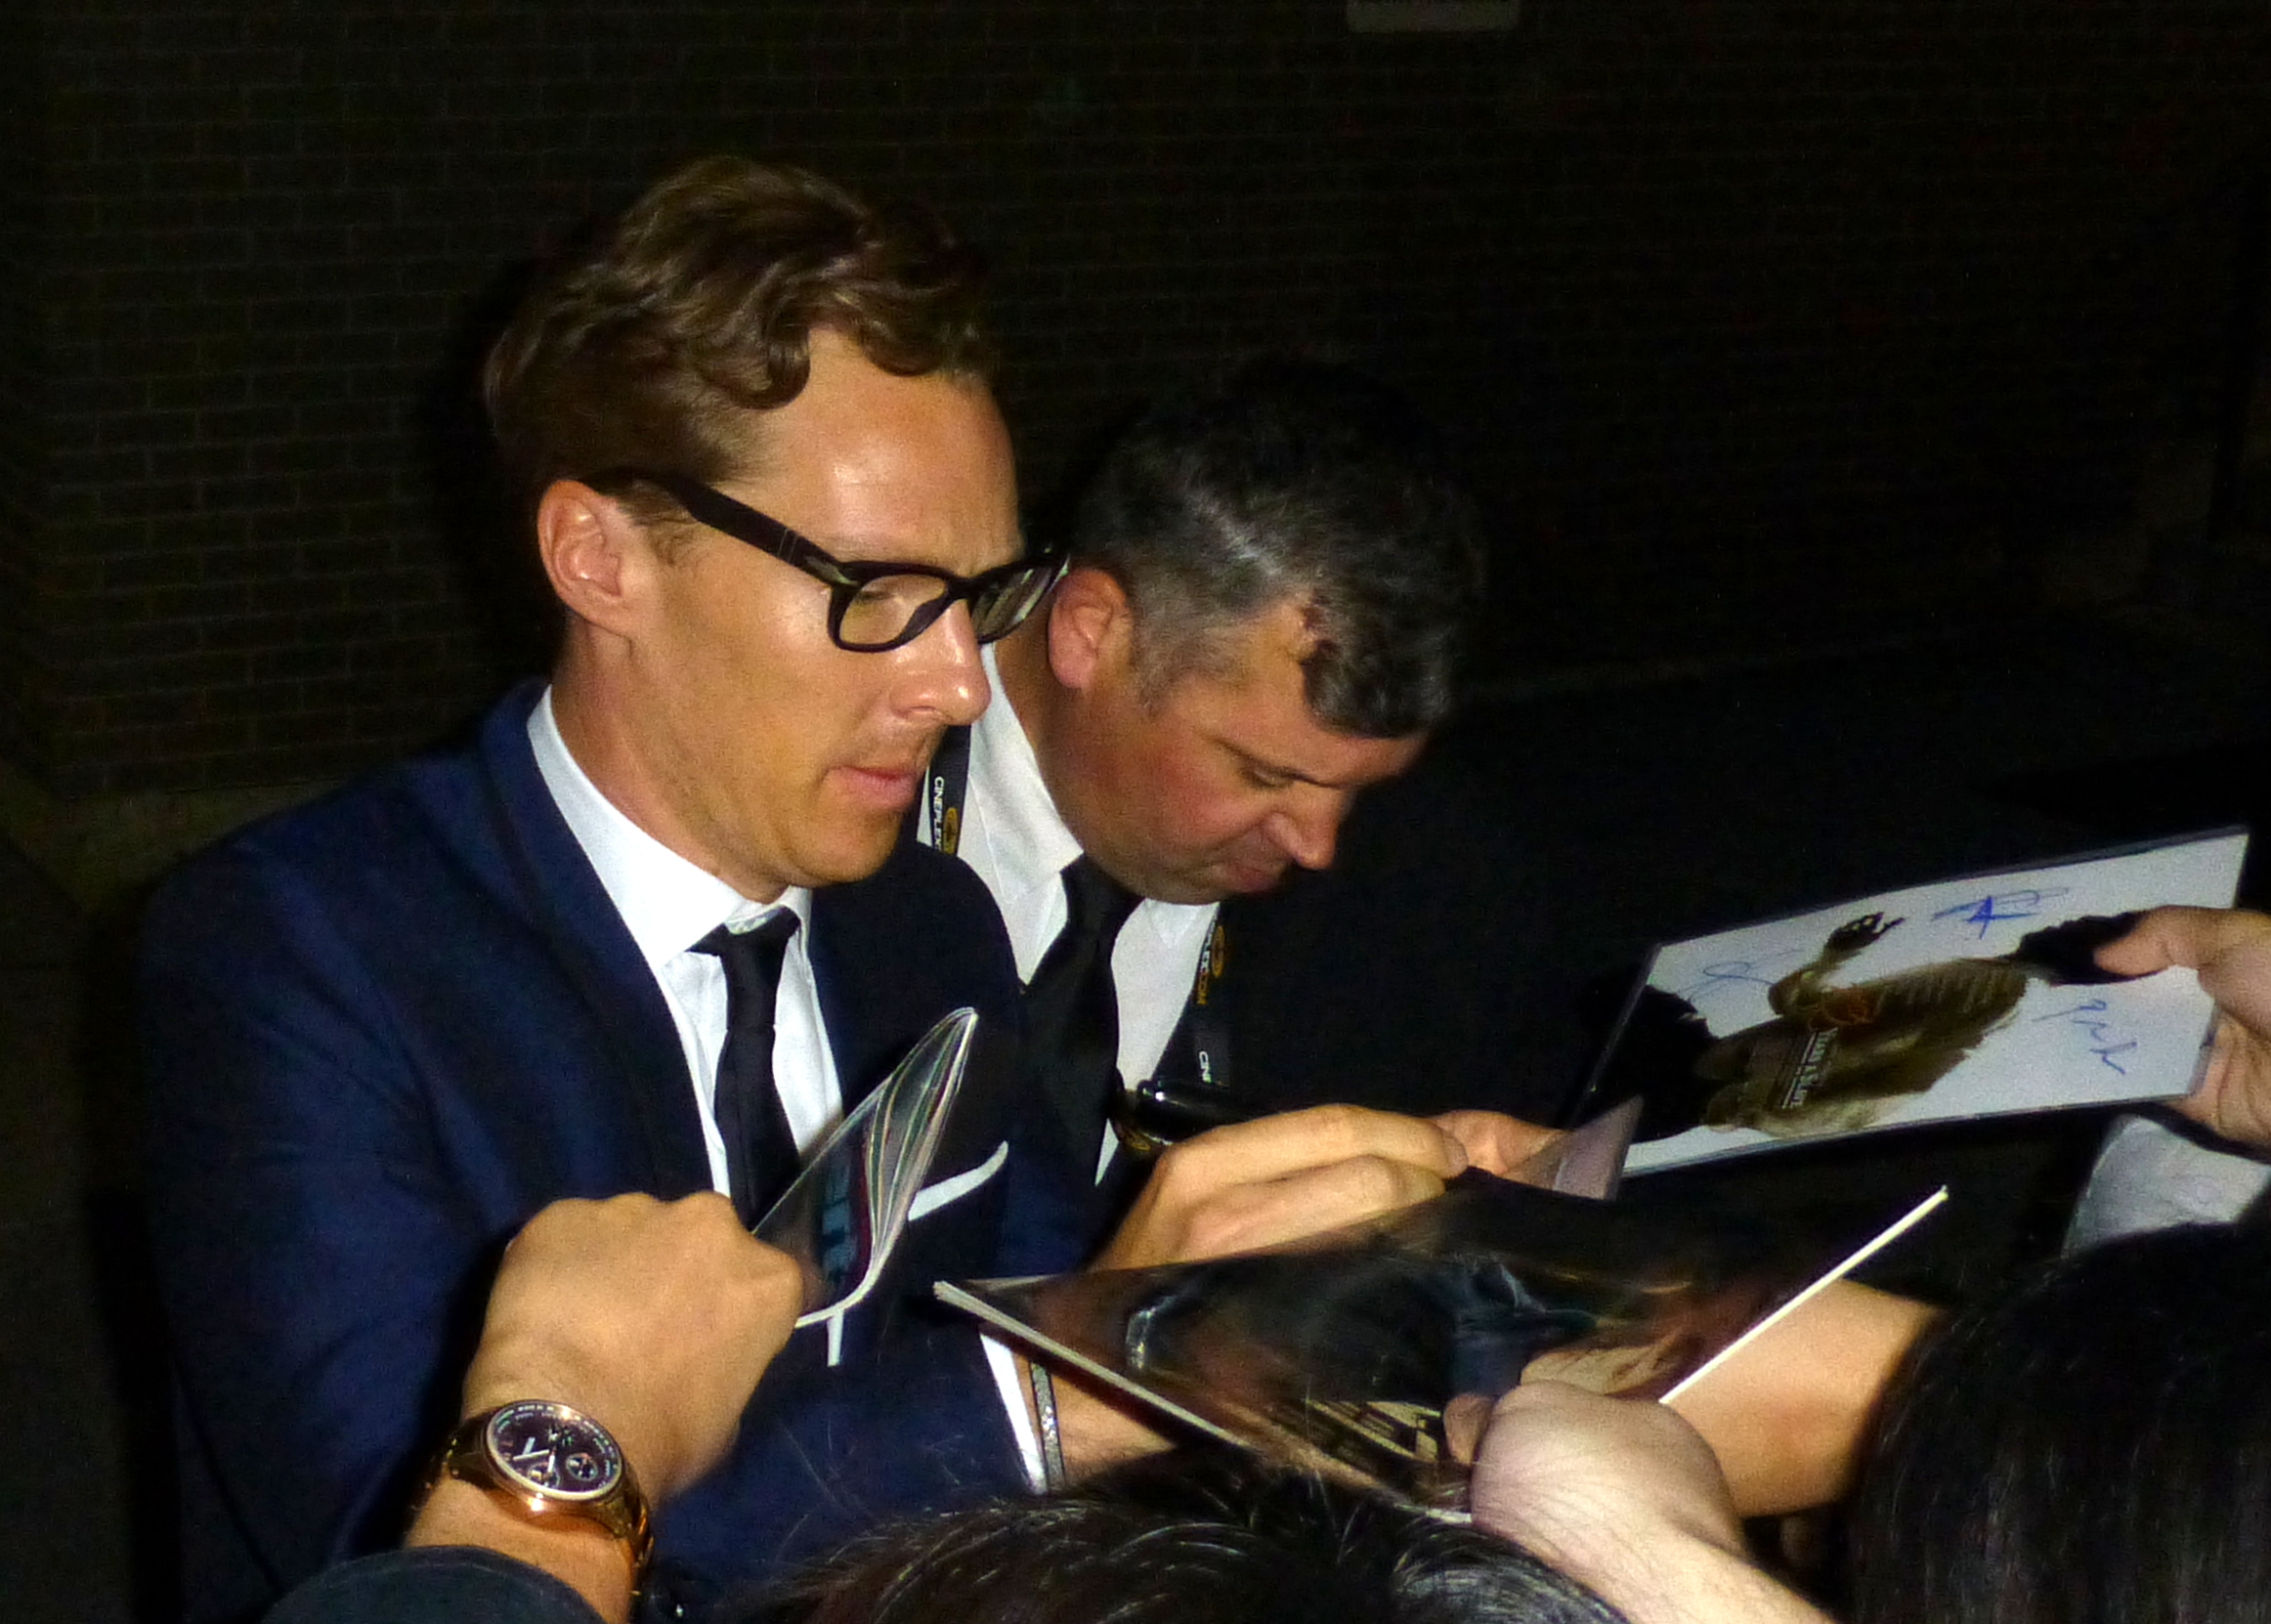 benedict-cumberbatch-imitation-game-10-tiff-2014